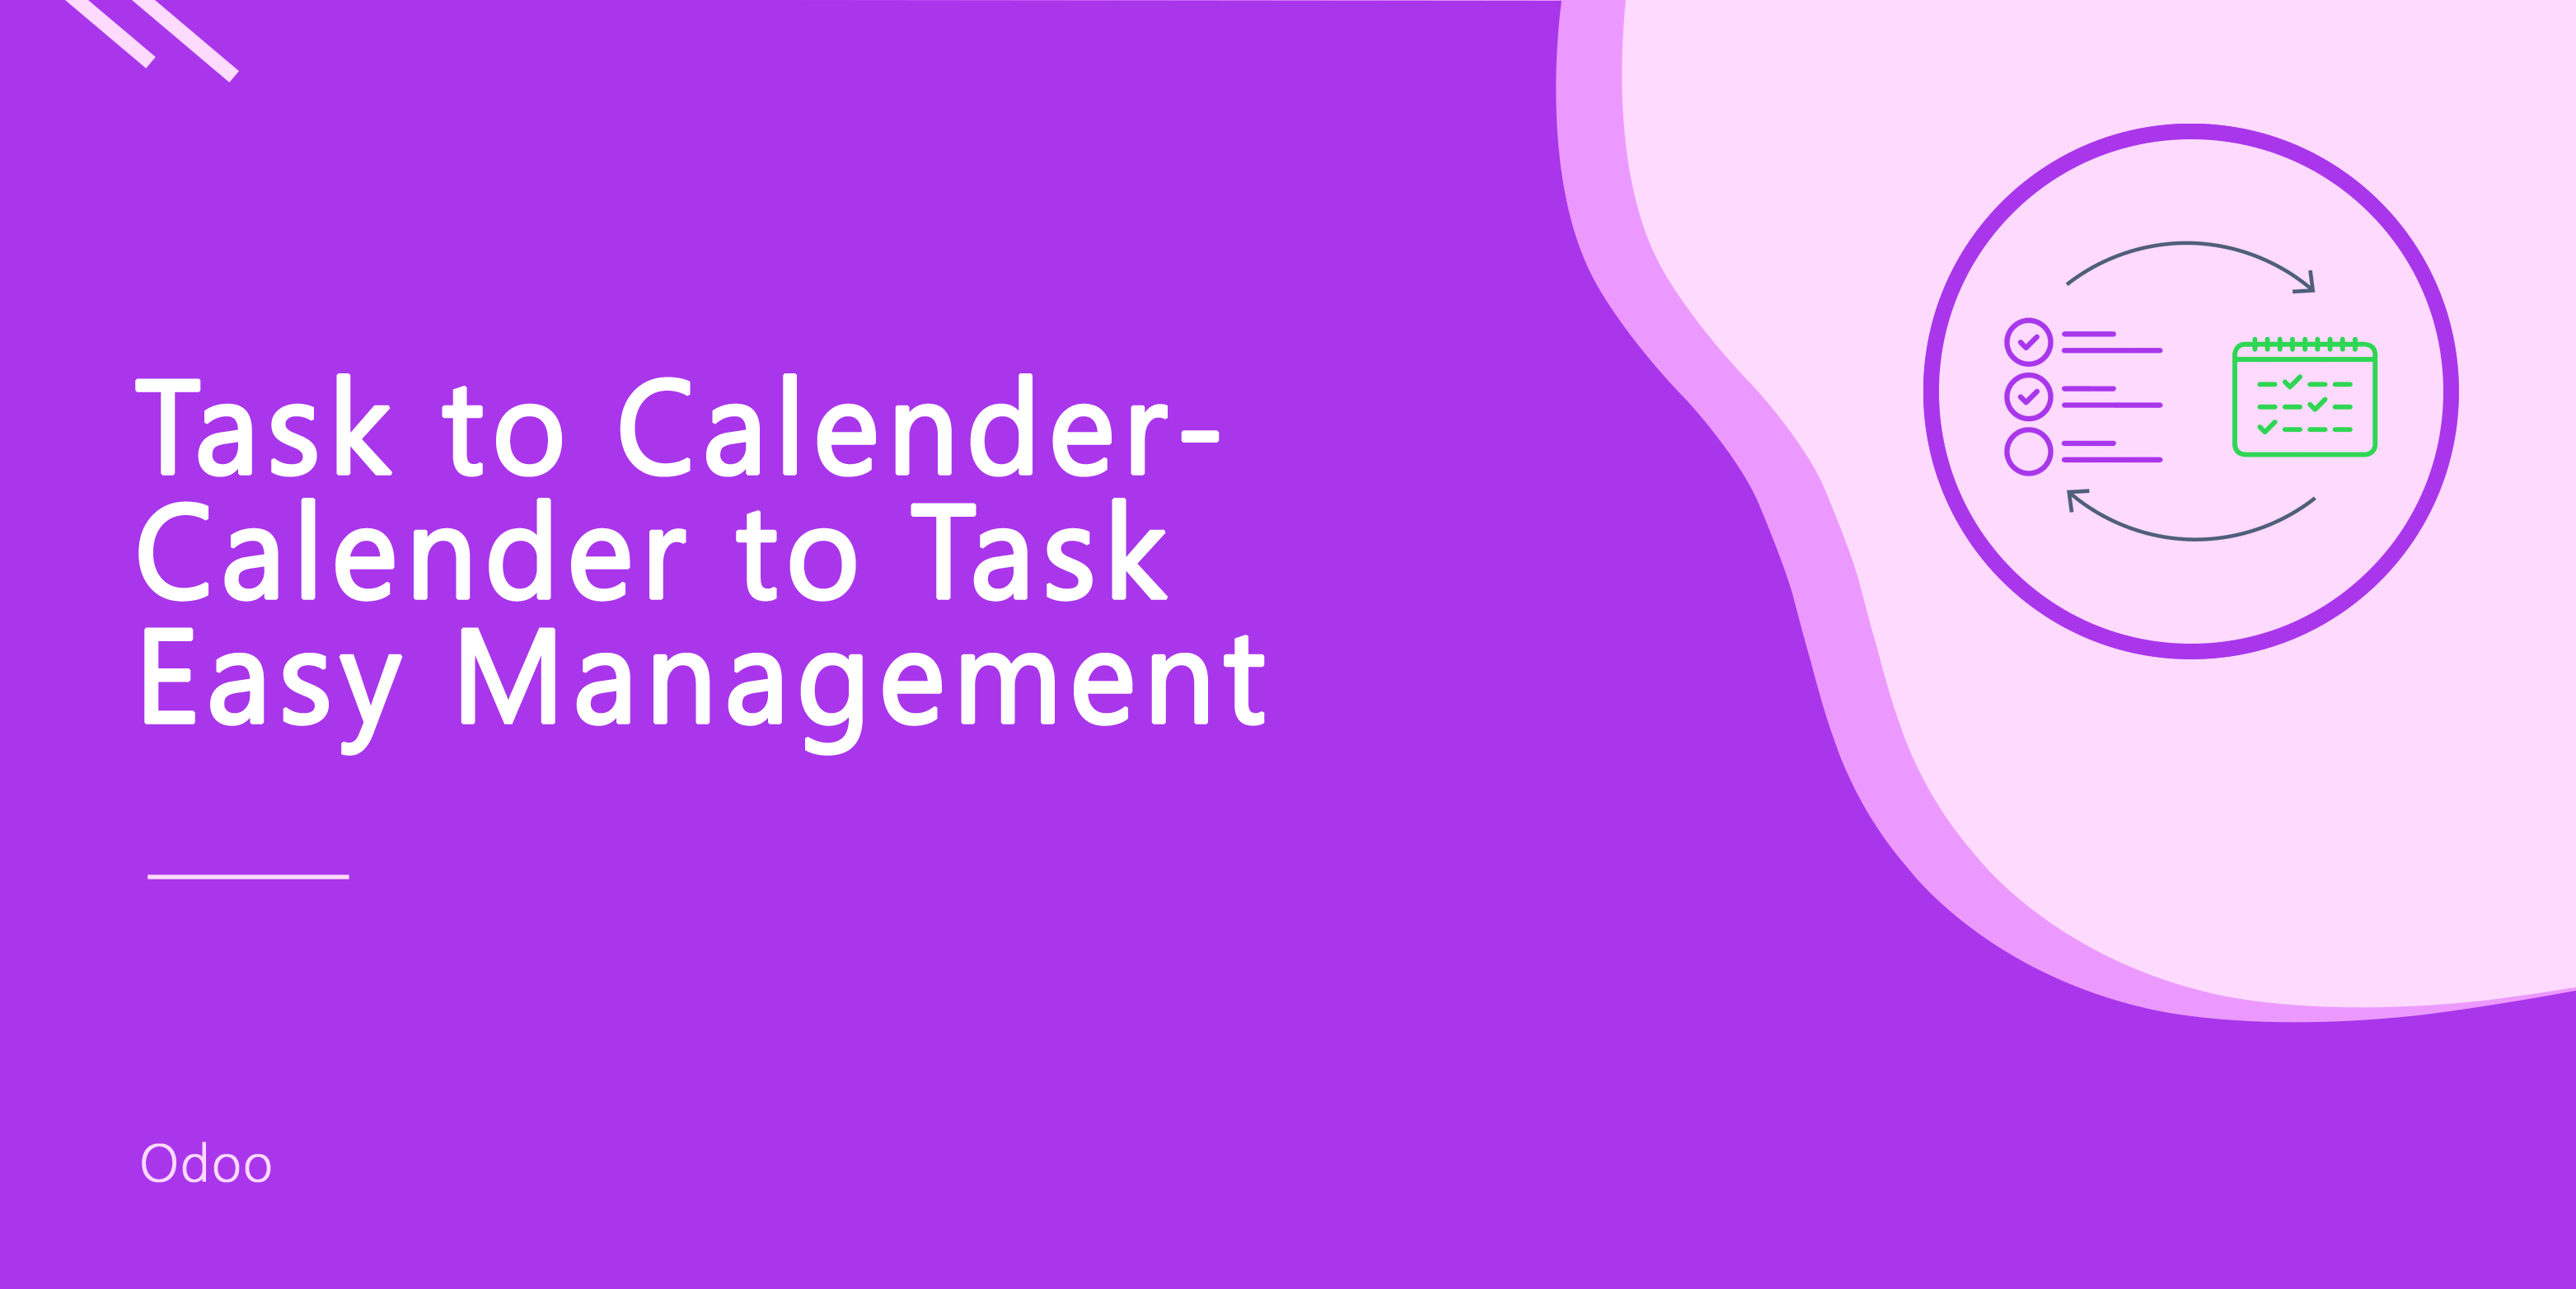 Project Task to Calendar and Calendar to Task Easy Management